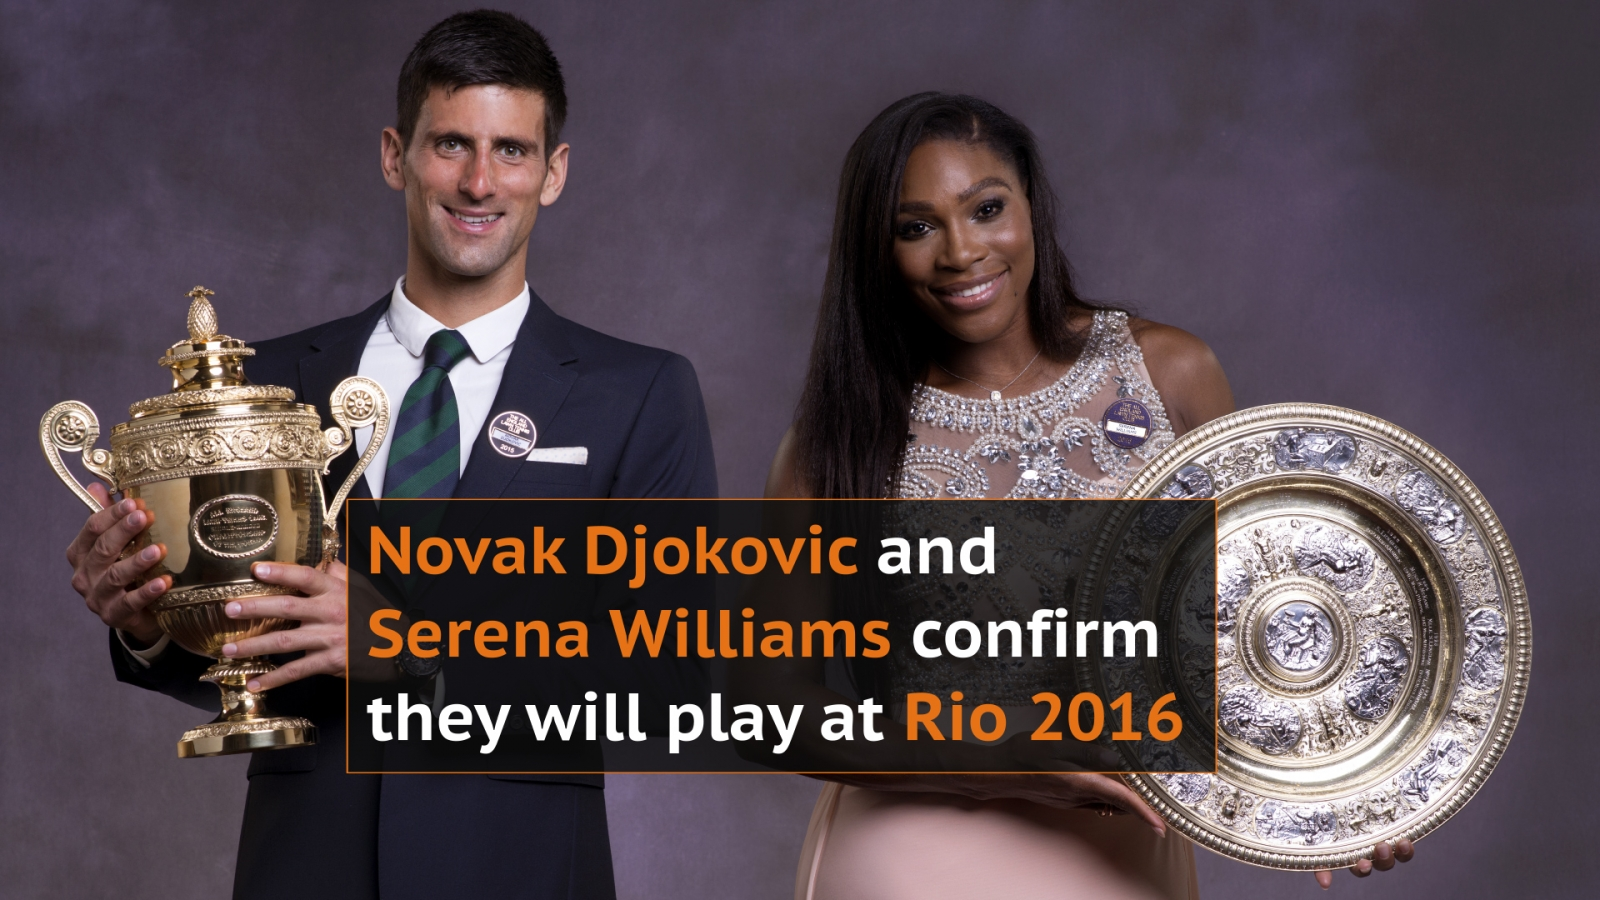 Rio Olympics: Novak Djokovic and Serena Williams confirm they will play despite Zika virus fears